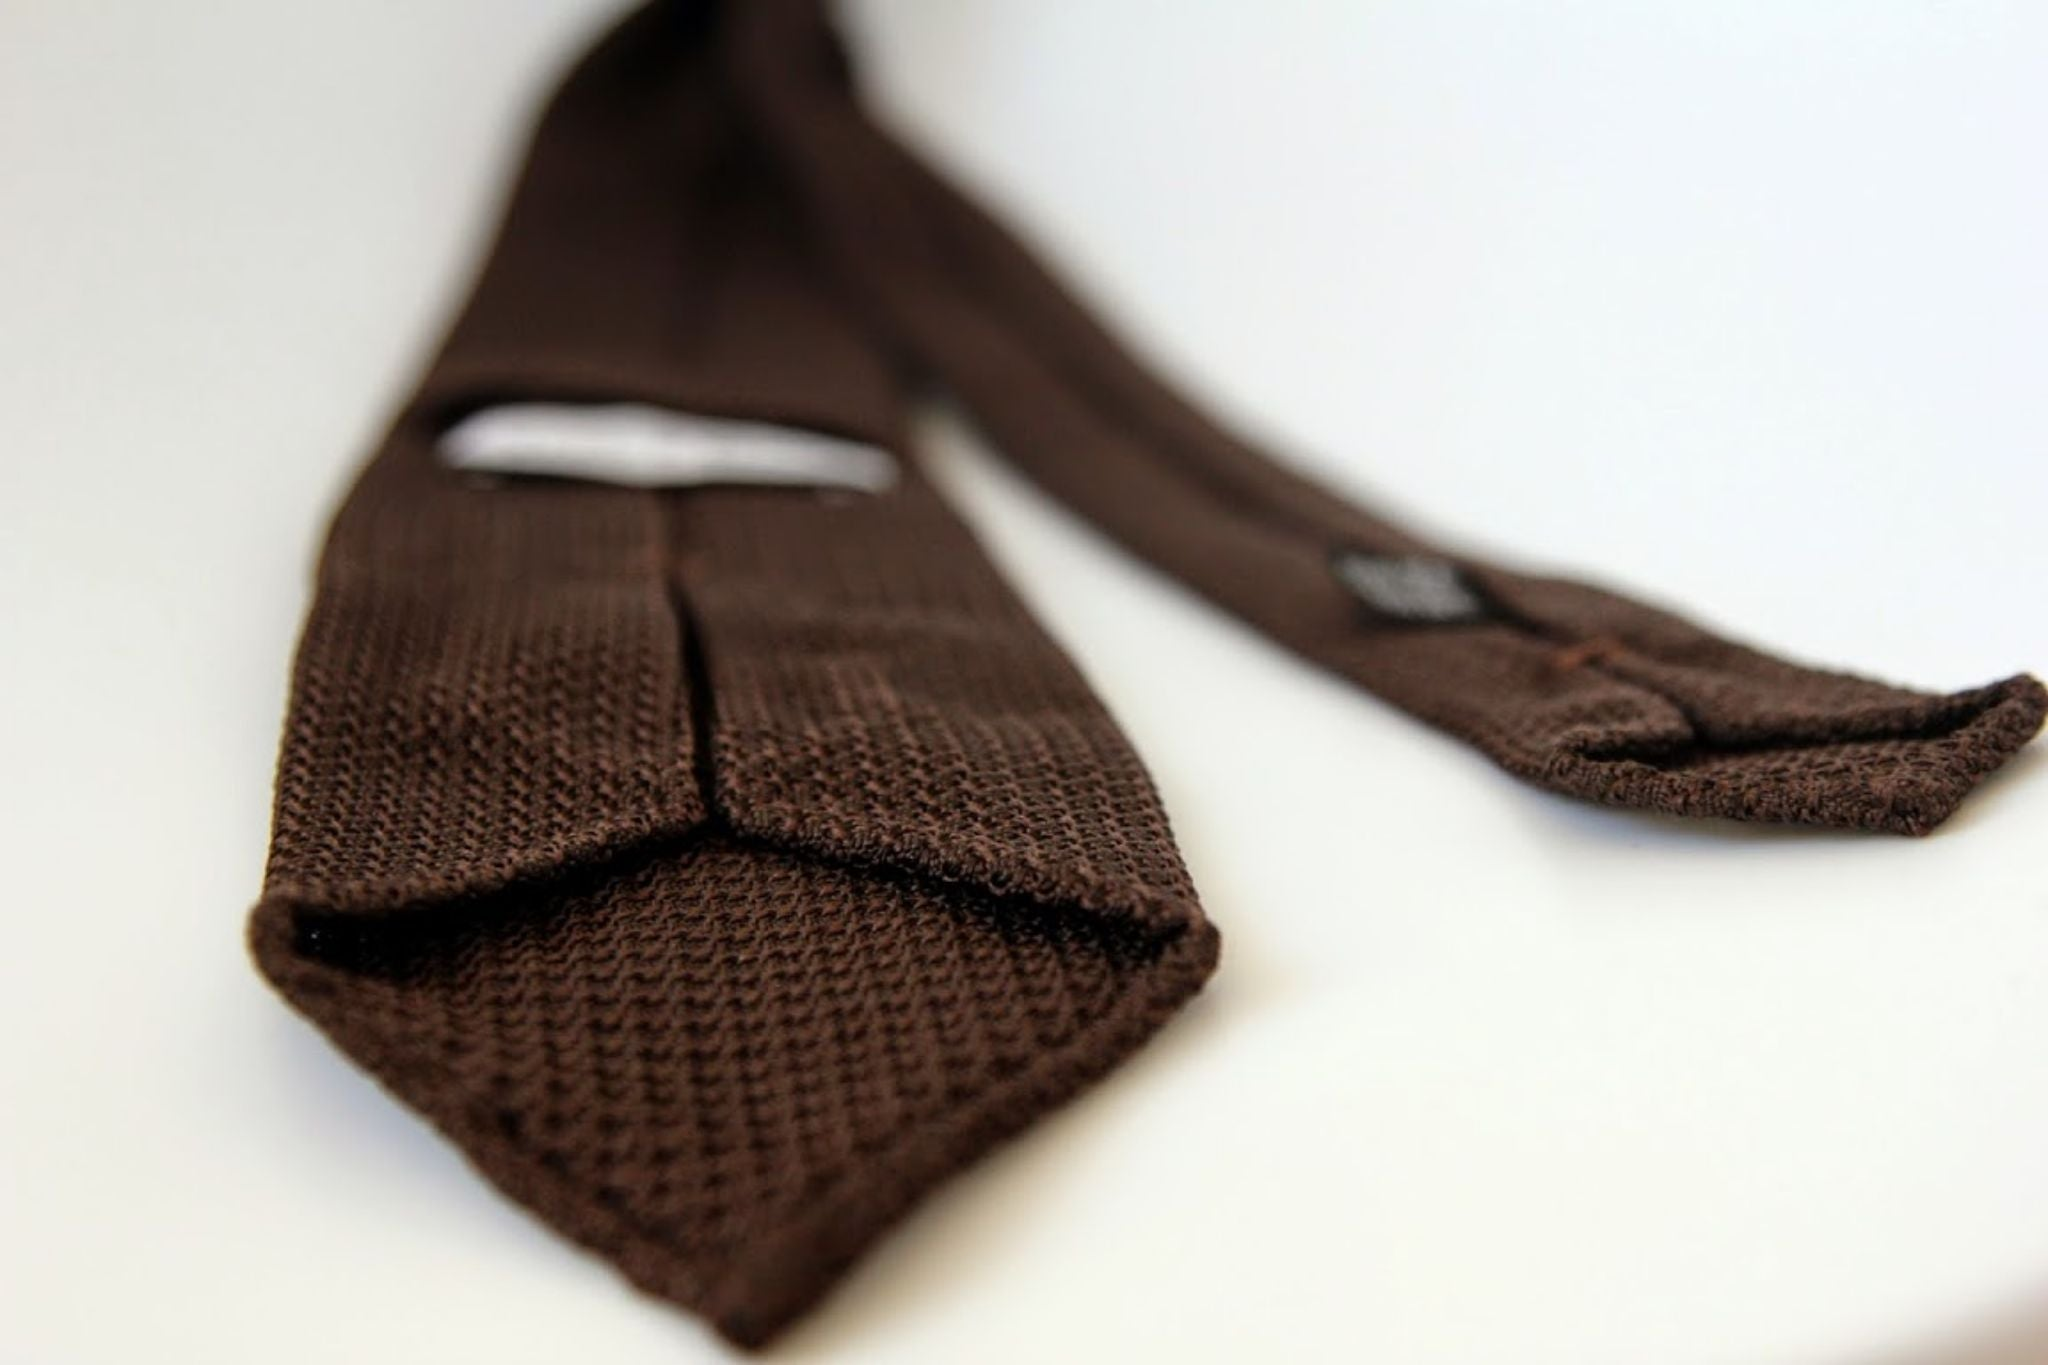 How to tie a tie - details of brown grenadine silk tie.